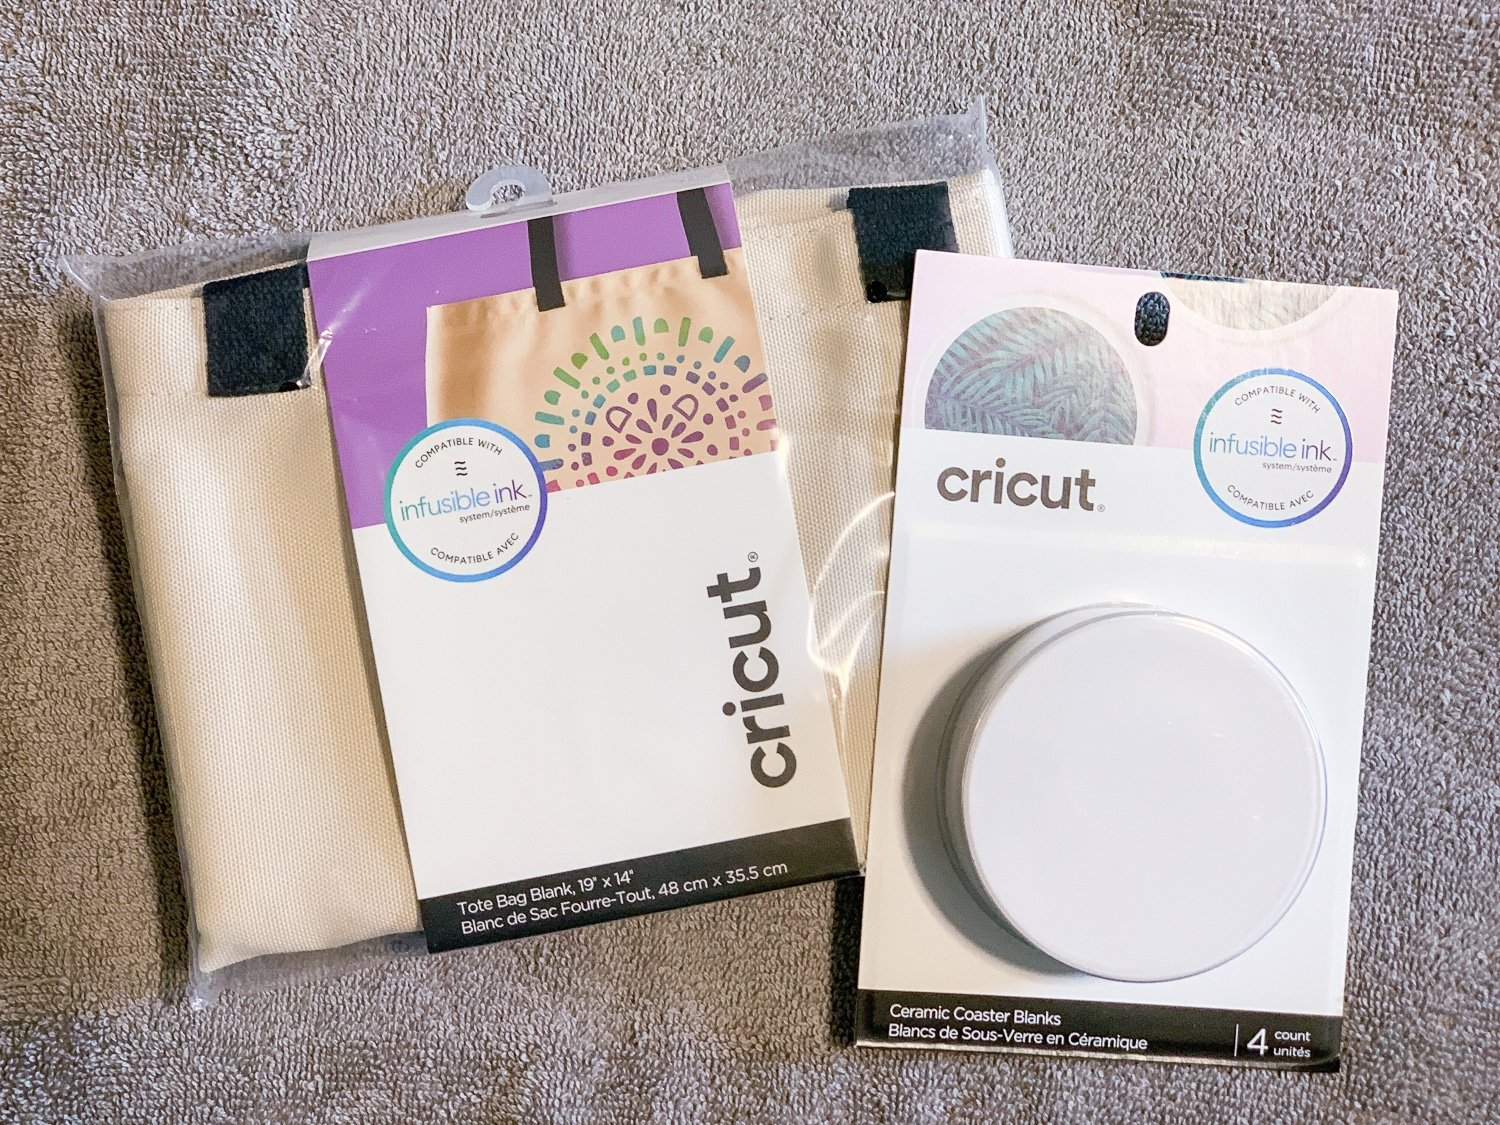 With the infusible ink system, you get smooth seamless heat transfers and the beauty is that you can use it with any of the newer Cricut machines and your EasyPress! #infusibleink #cricut #cricutmade #cricutprojects #easypress